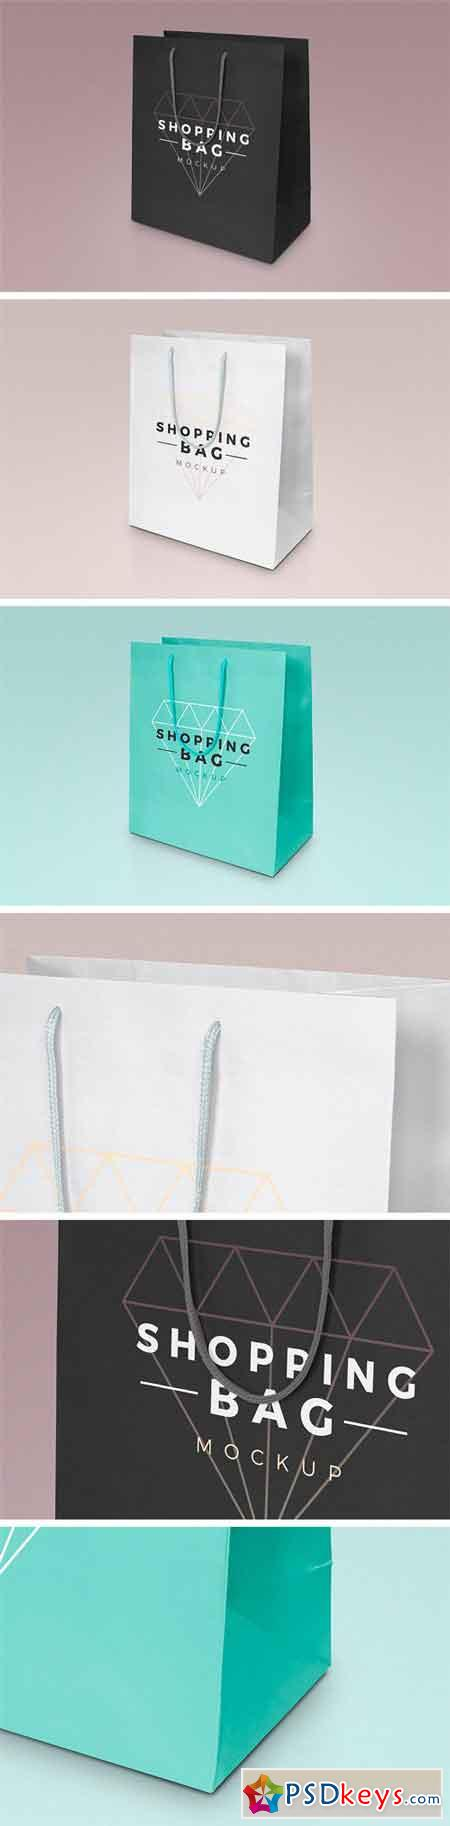 Shopping Bag Mockup 2350263